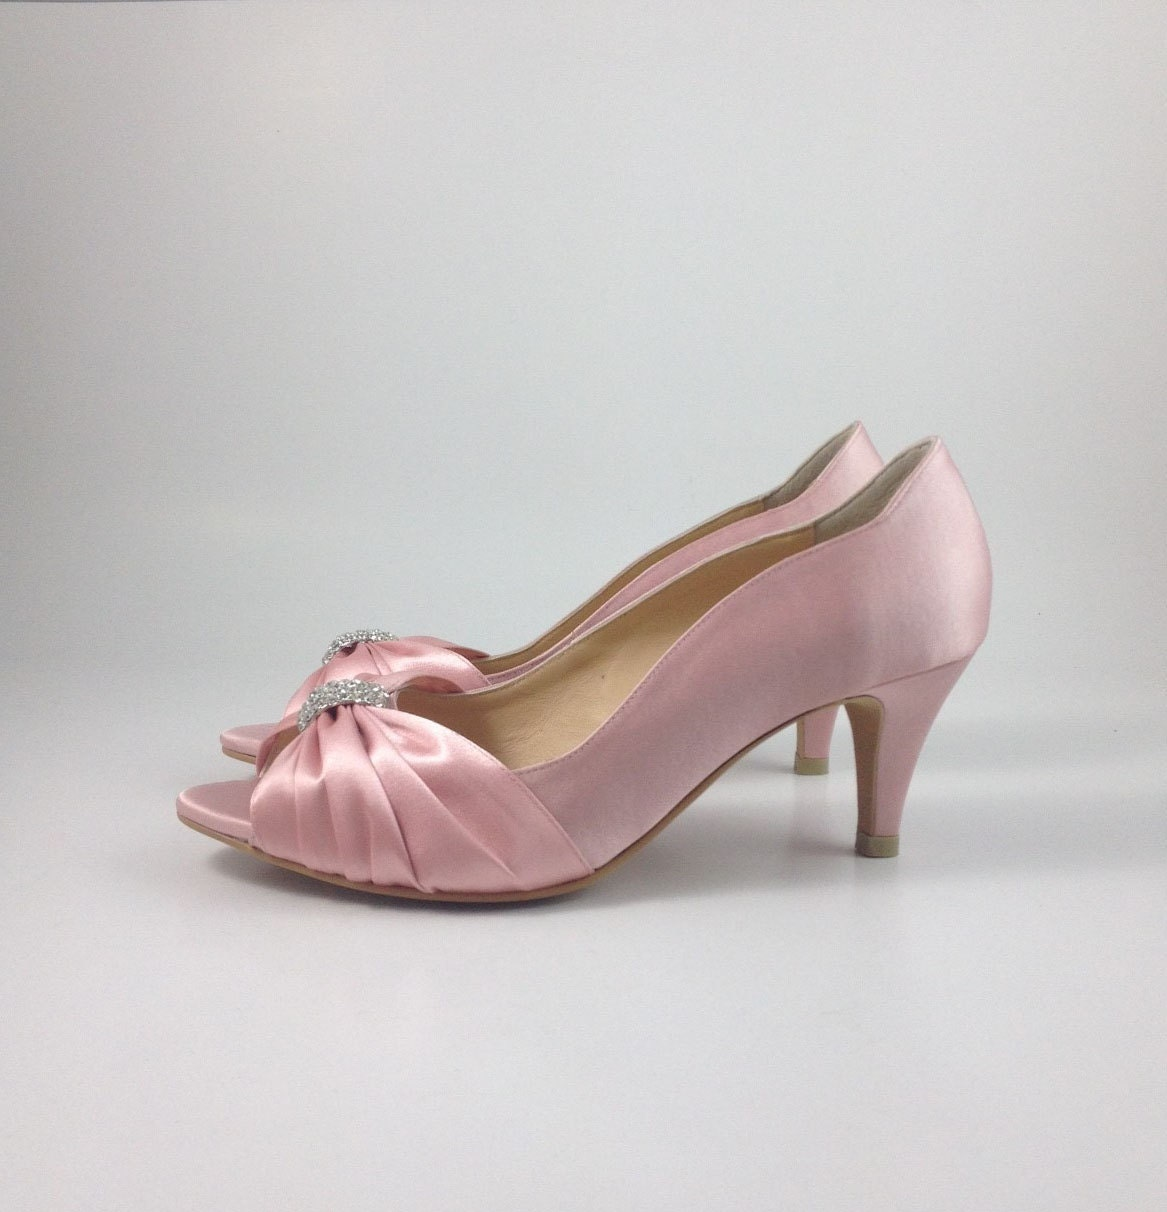 Sweet Pink Wedding Shoes With Rhinestones Pastel Bridal